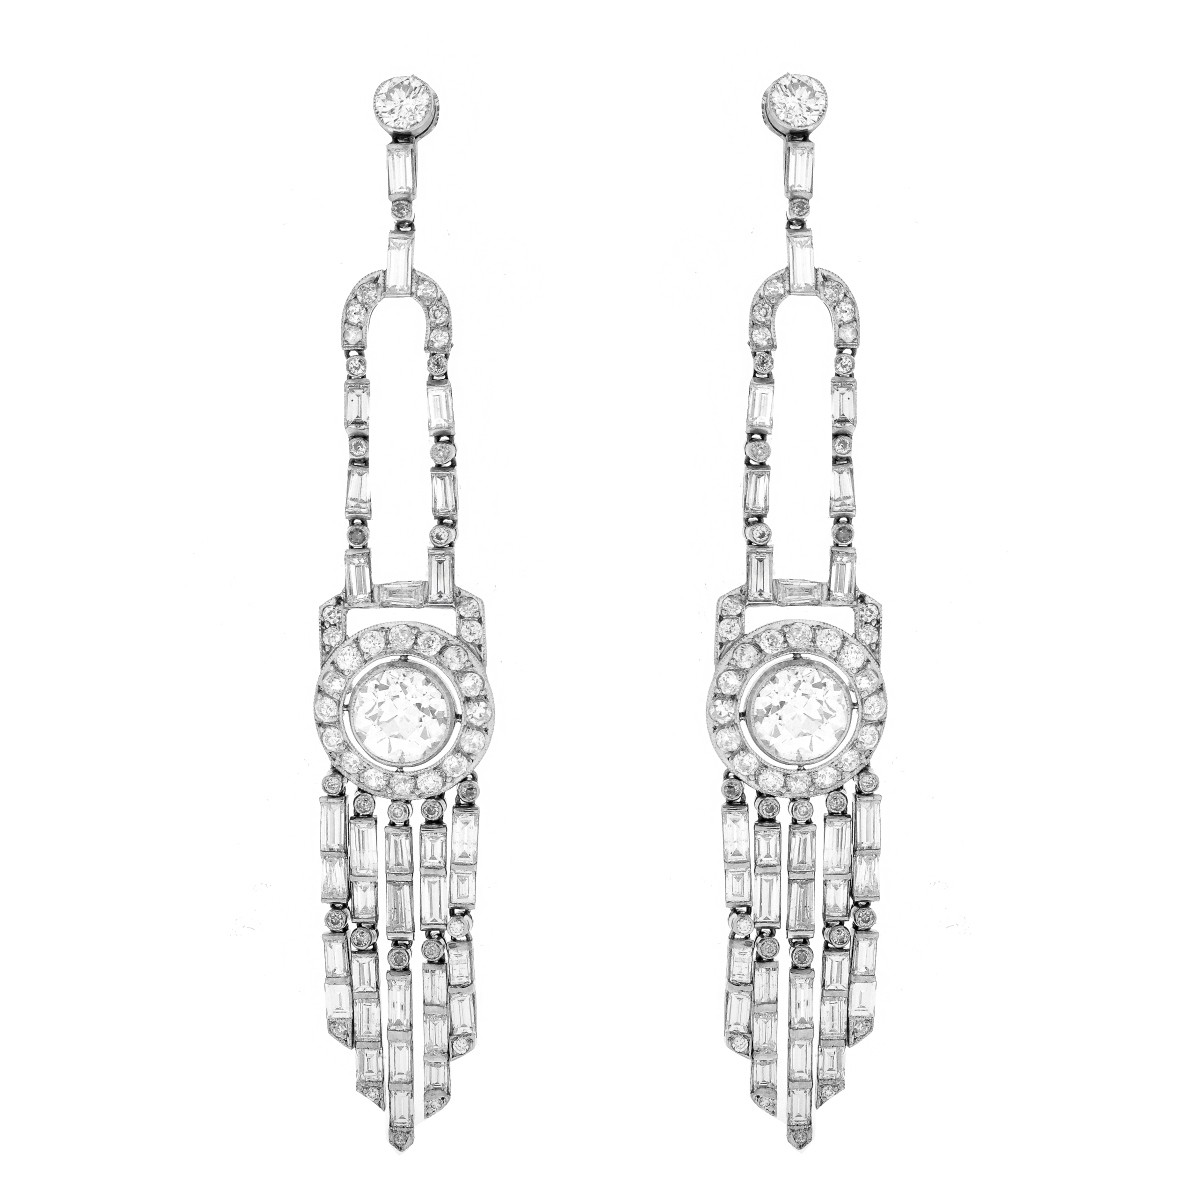 13.0ct TW Diamond and Platinum Earrings